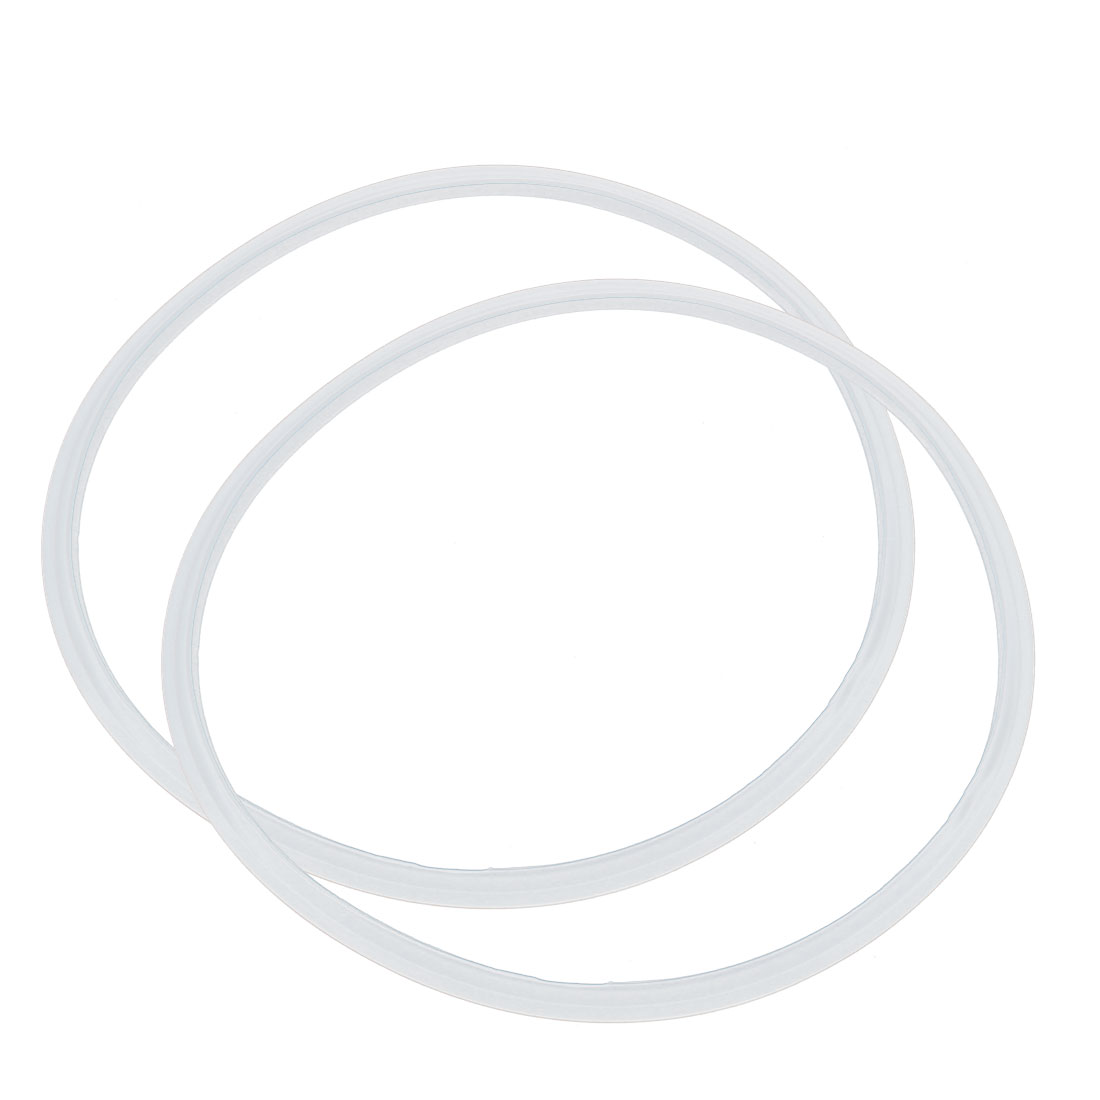 2 Pcs Silicone Pressure Cooker Gasket Sealing Ring 30cm Inner Dia White